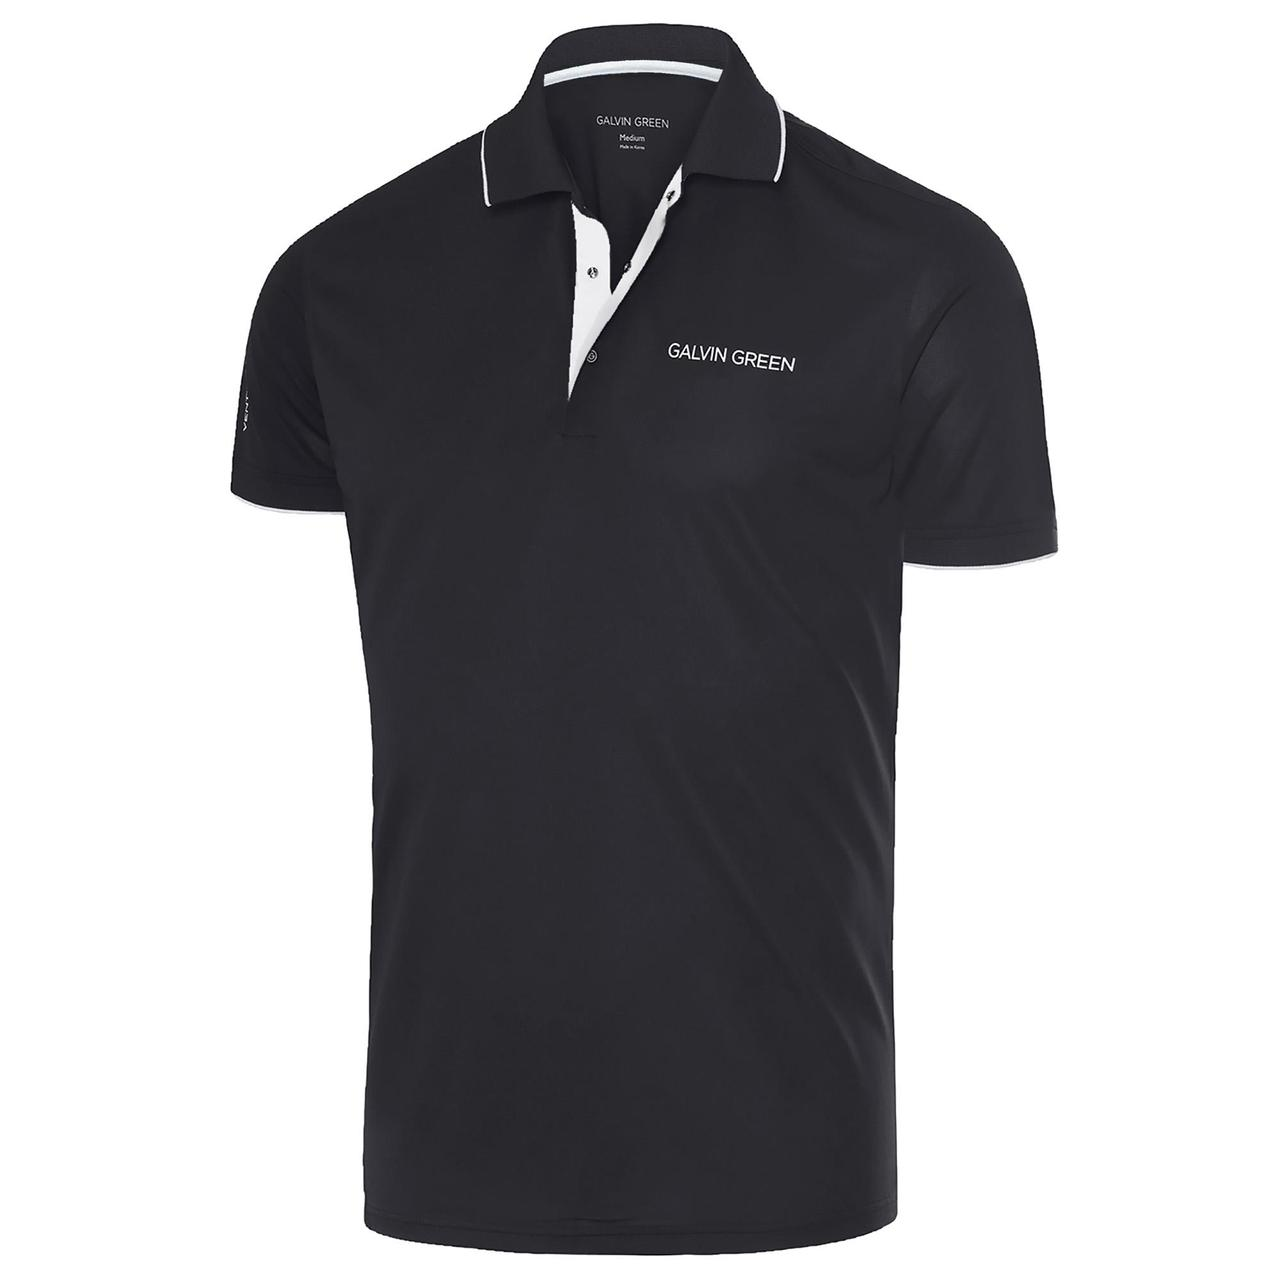 Galvin Green Marty Tour - Black